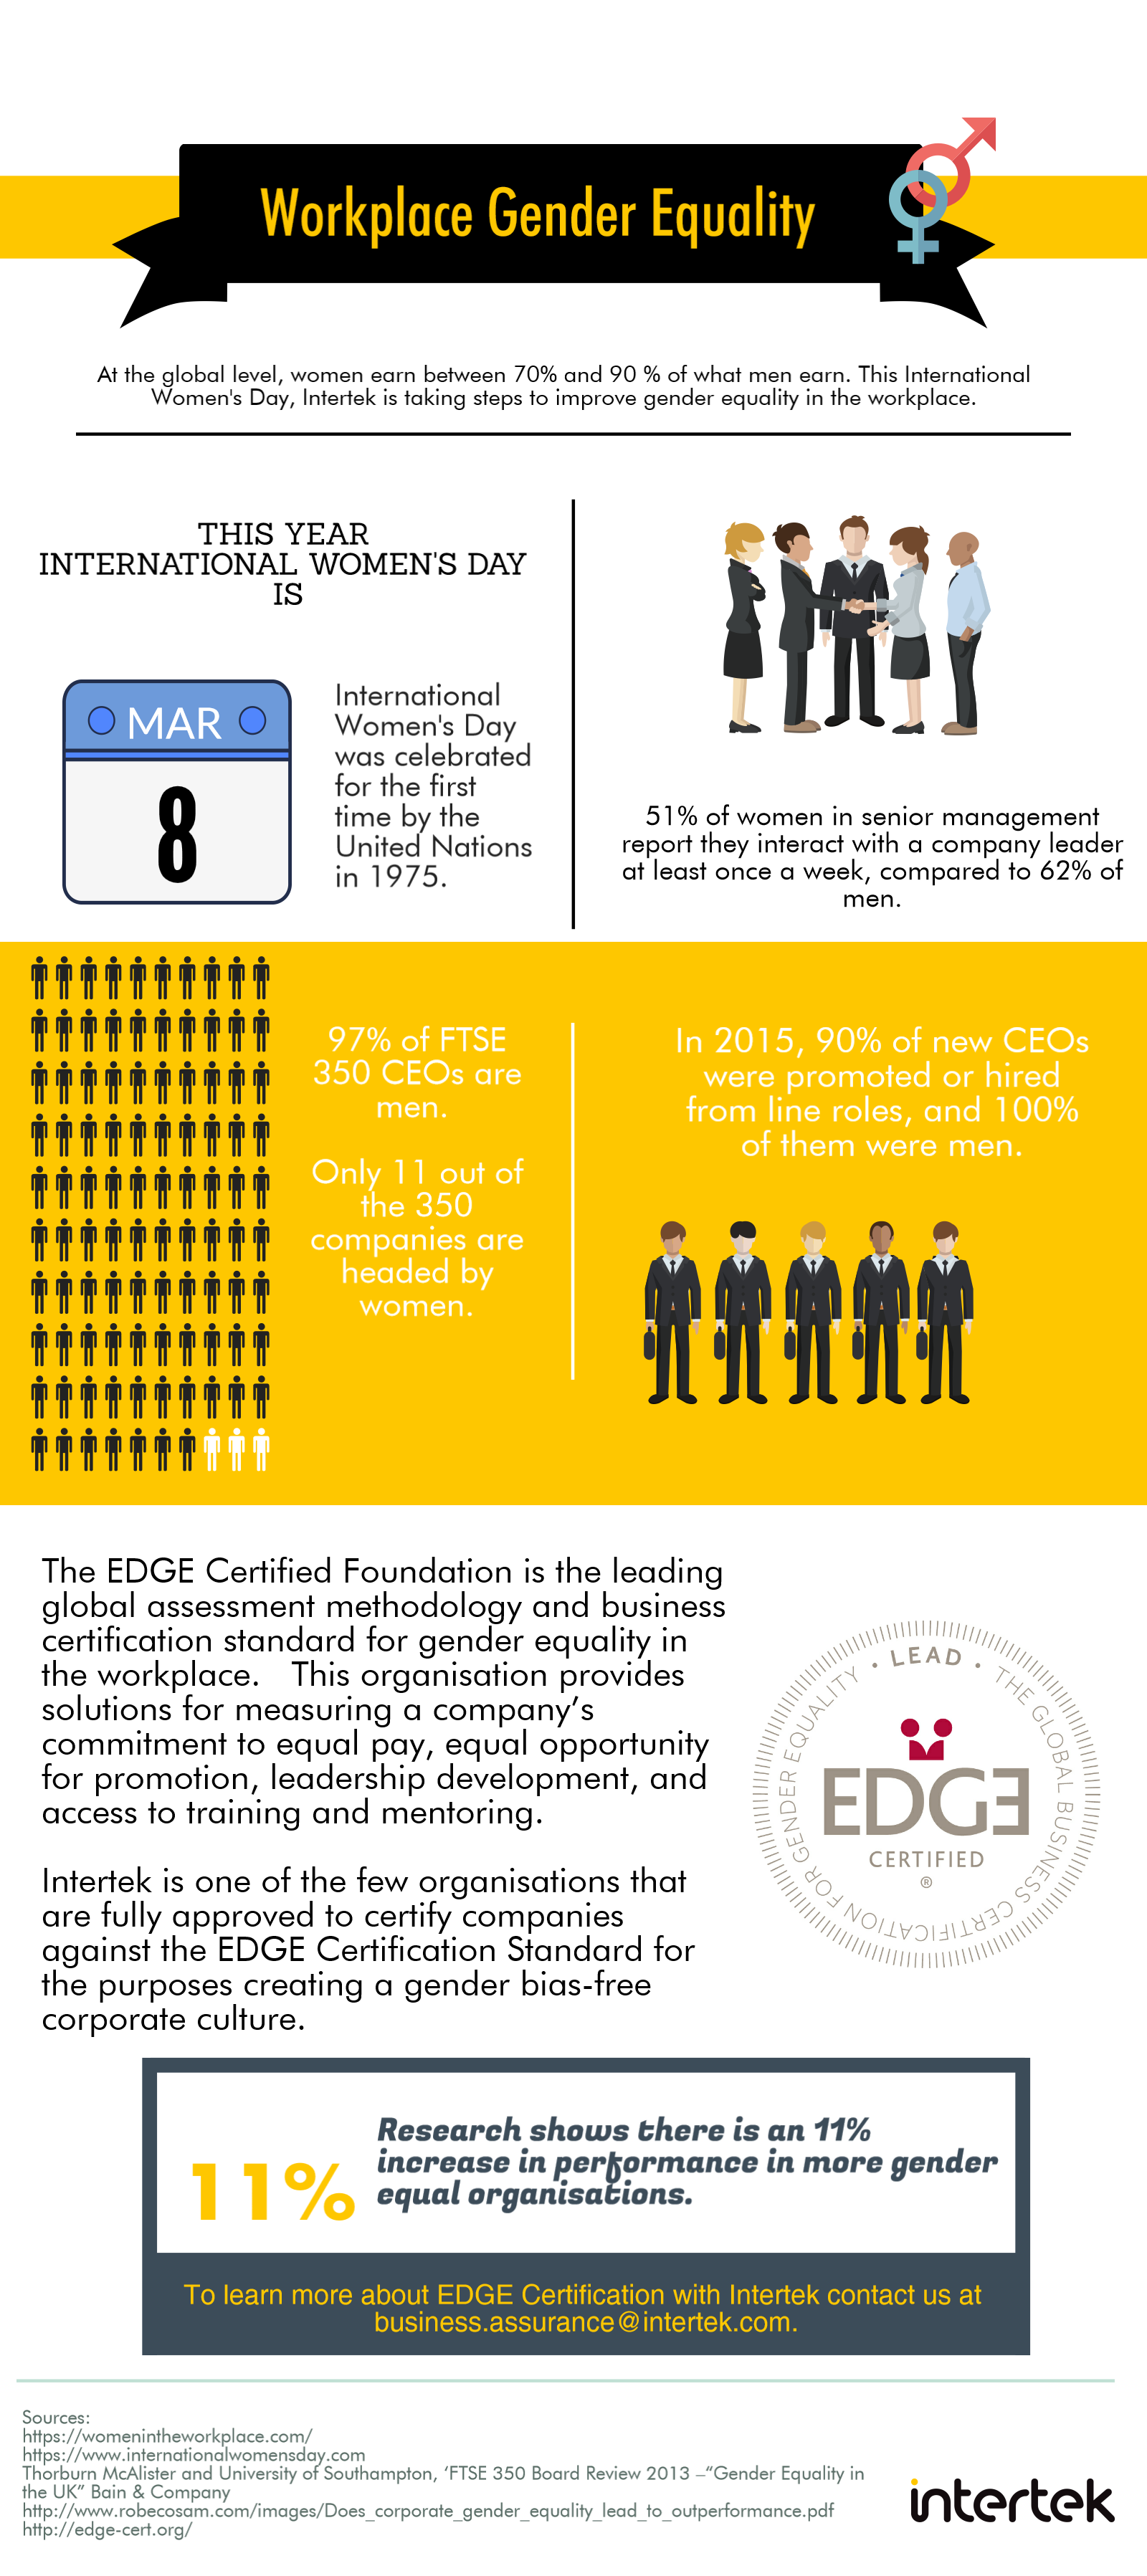 EDGE Certification: Bringing Gender Equality to the Forefront